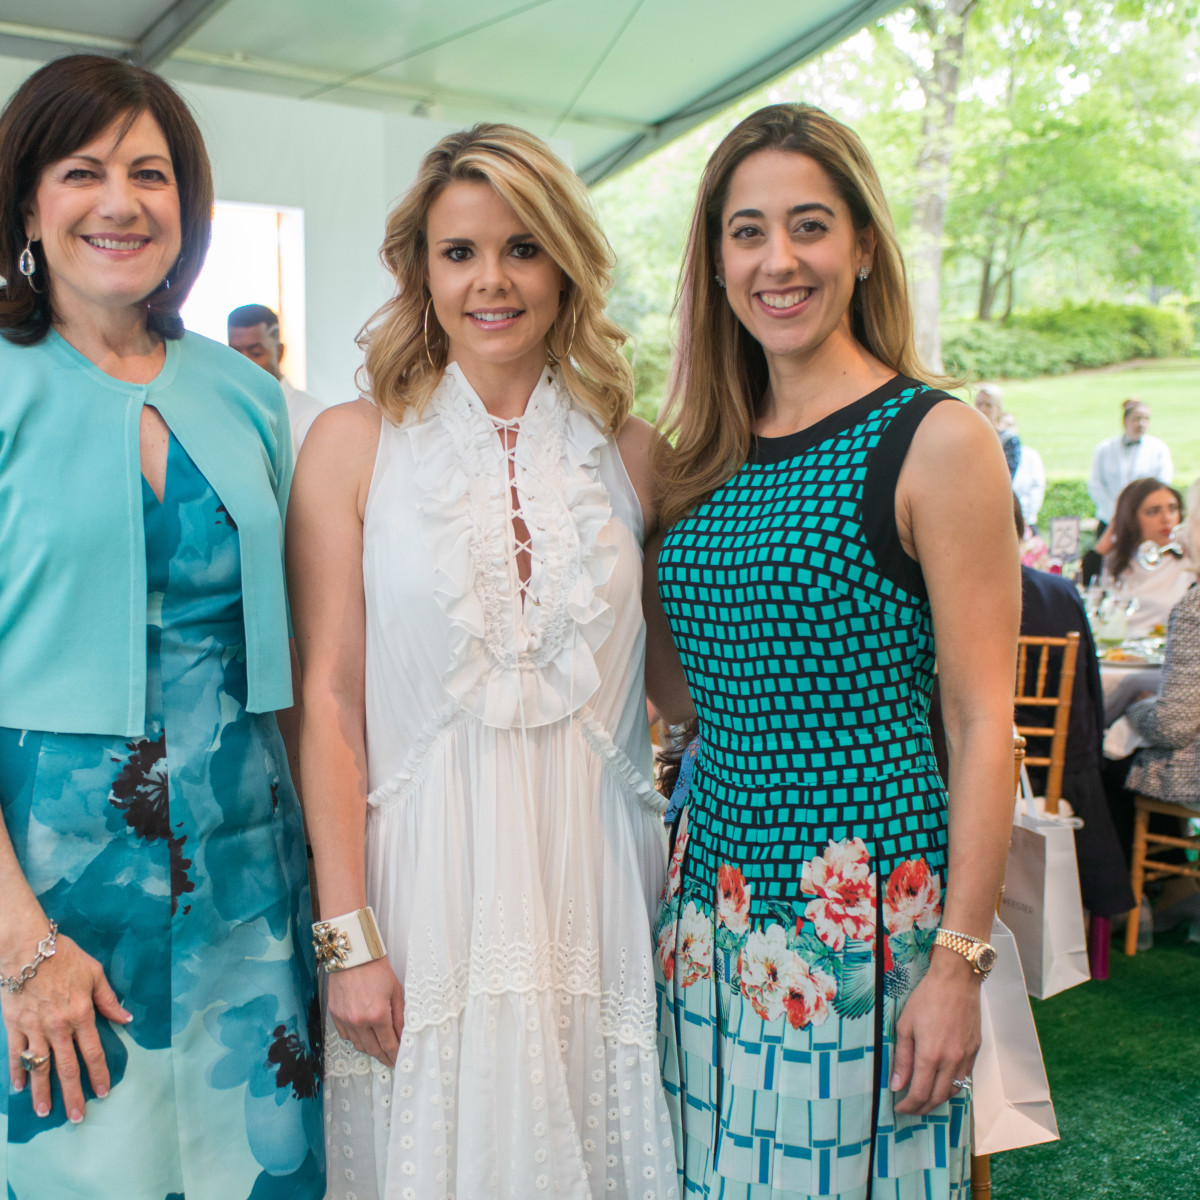 Bayou Bend luncheon, April 2016, Ellie Francisco, Reagan Bauer, Kristina Somerville